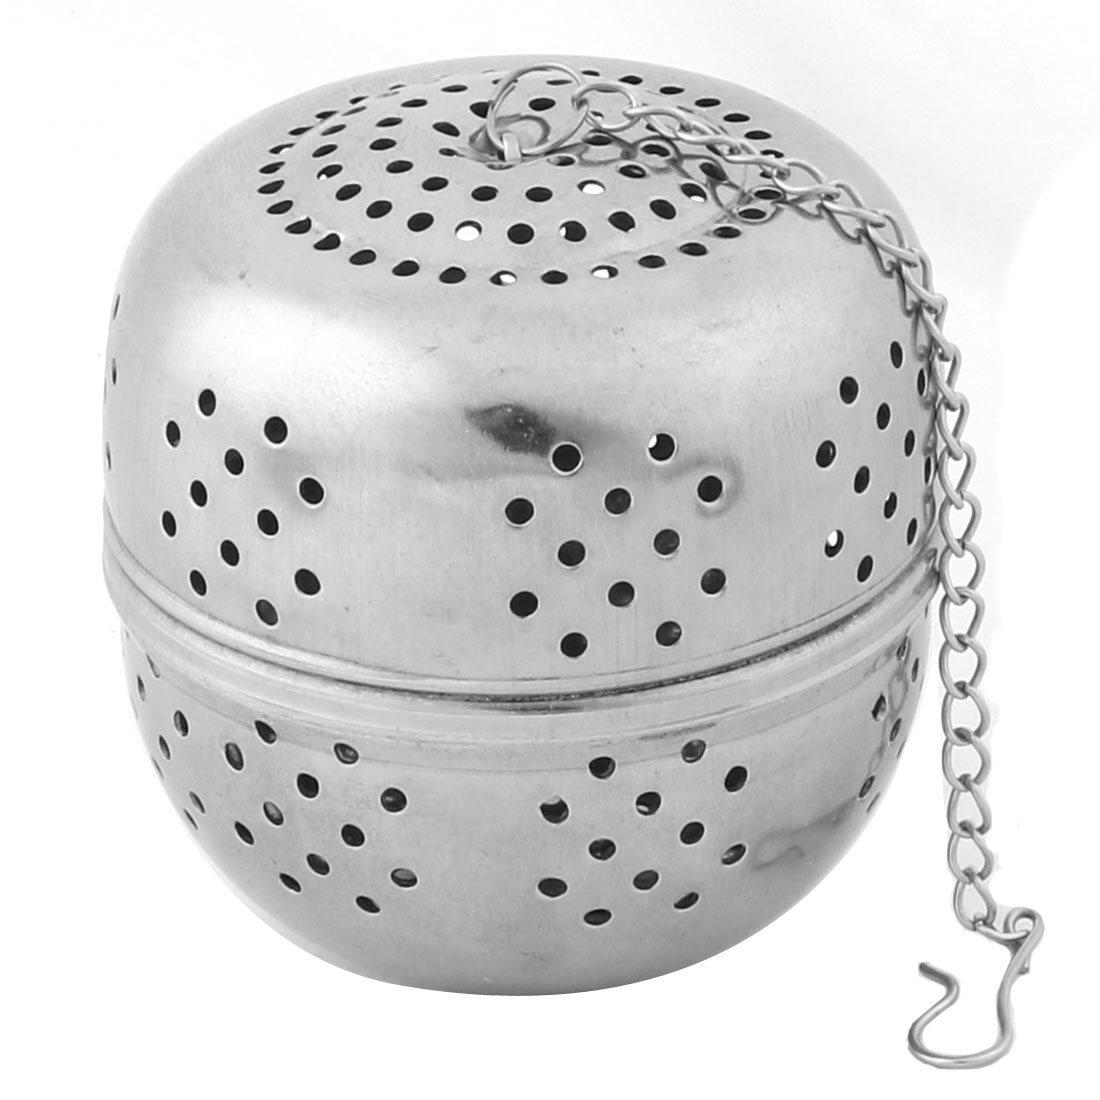 Restaurant Kitchen Household Stainless Steel Tea Ball Strainer Infuser Silver Tone